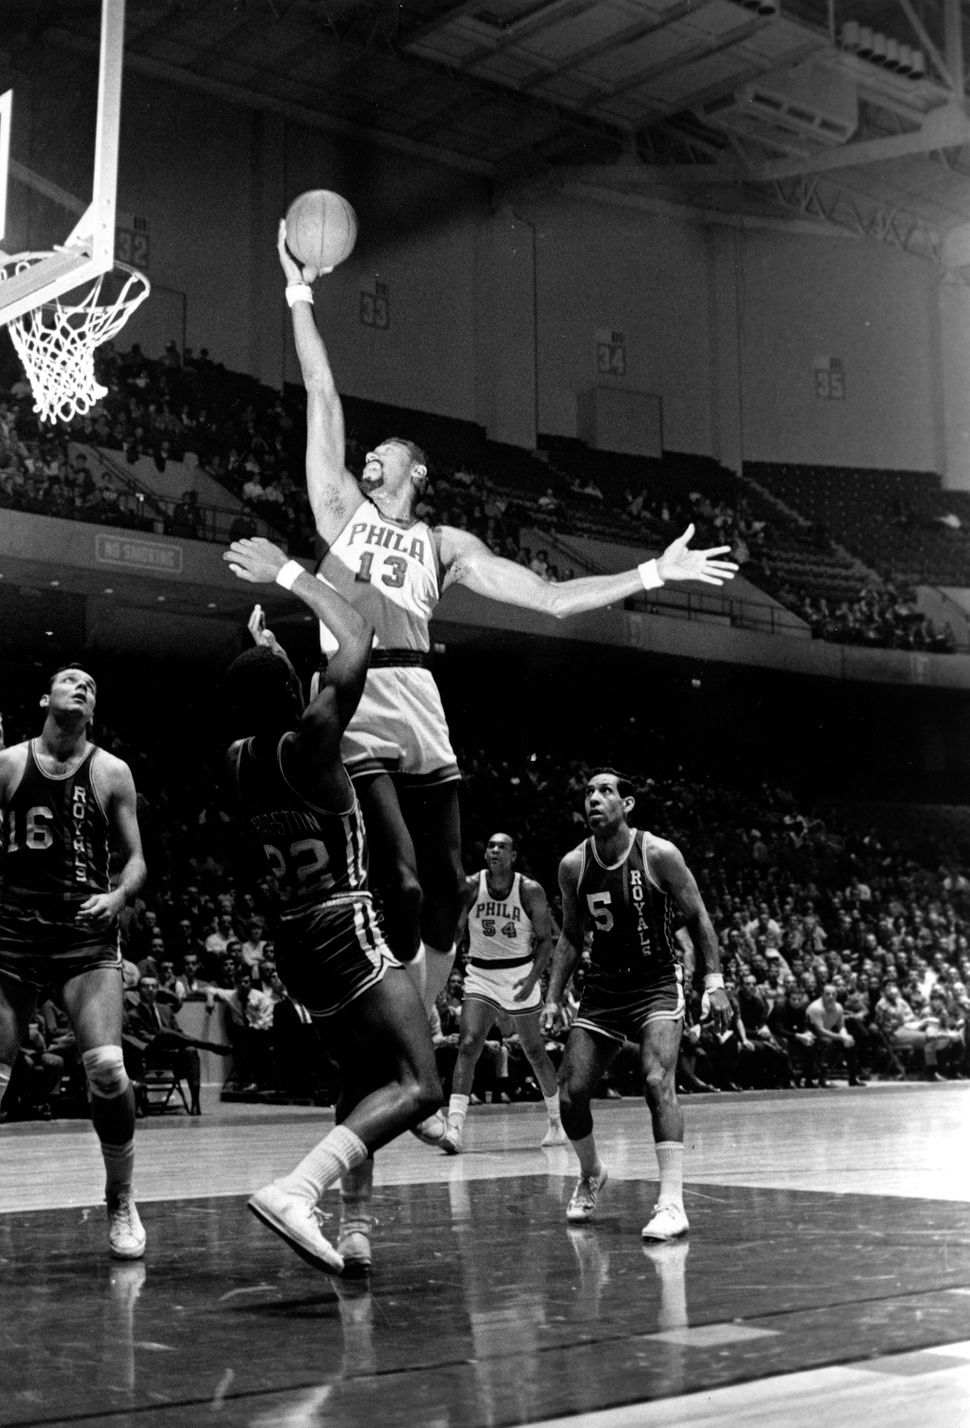 Basketball as we know it was molded by Wilt Chamberlain's dominance on the court.